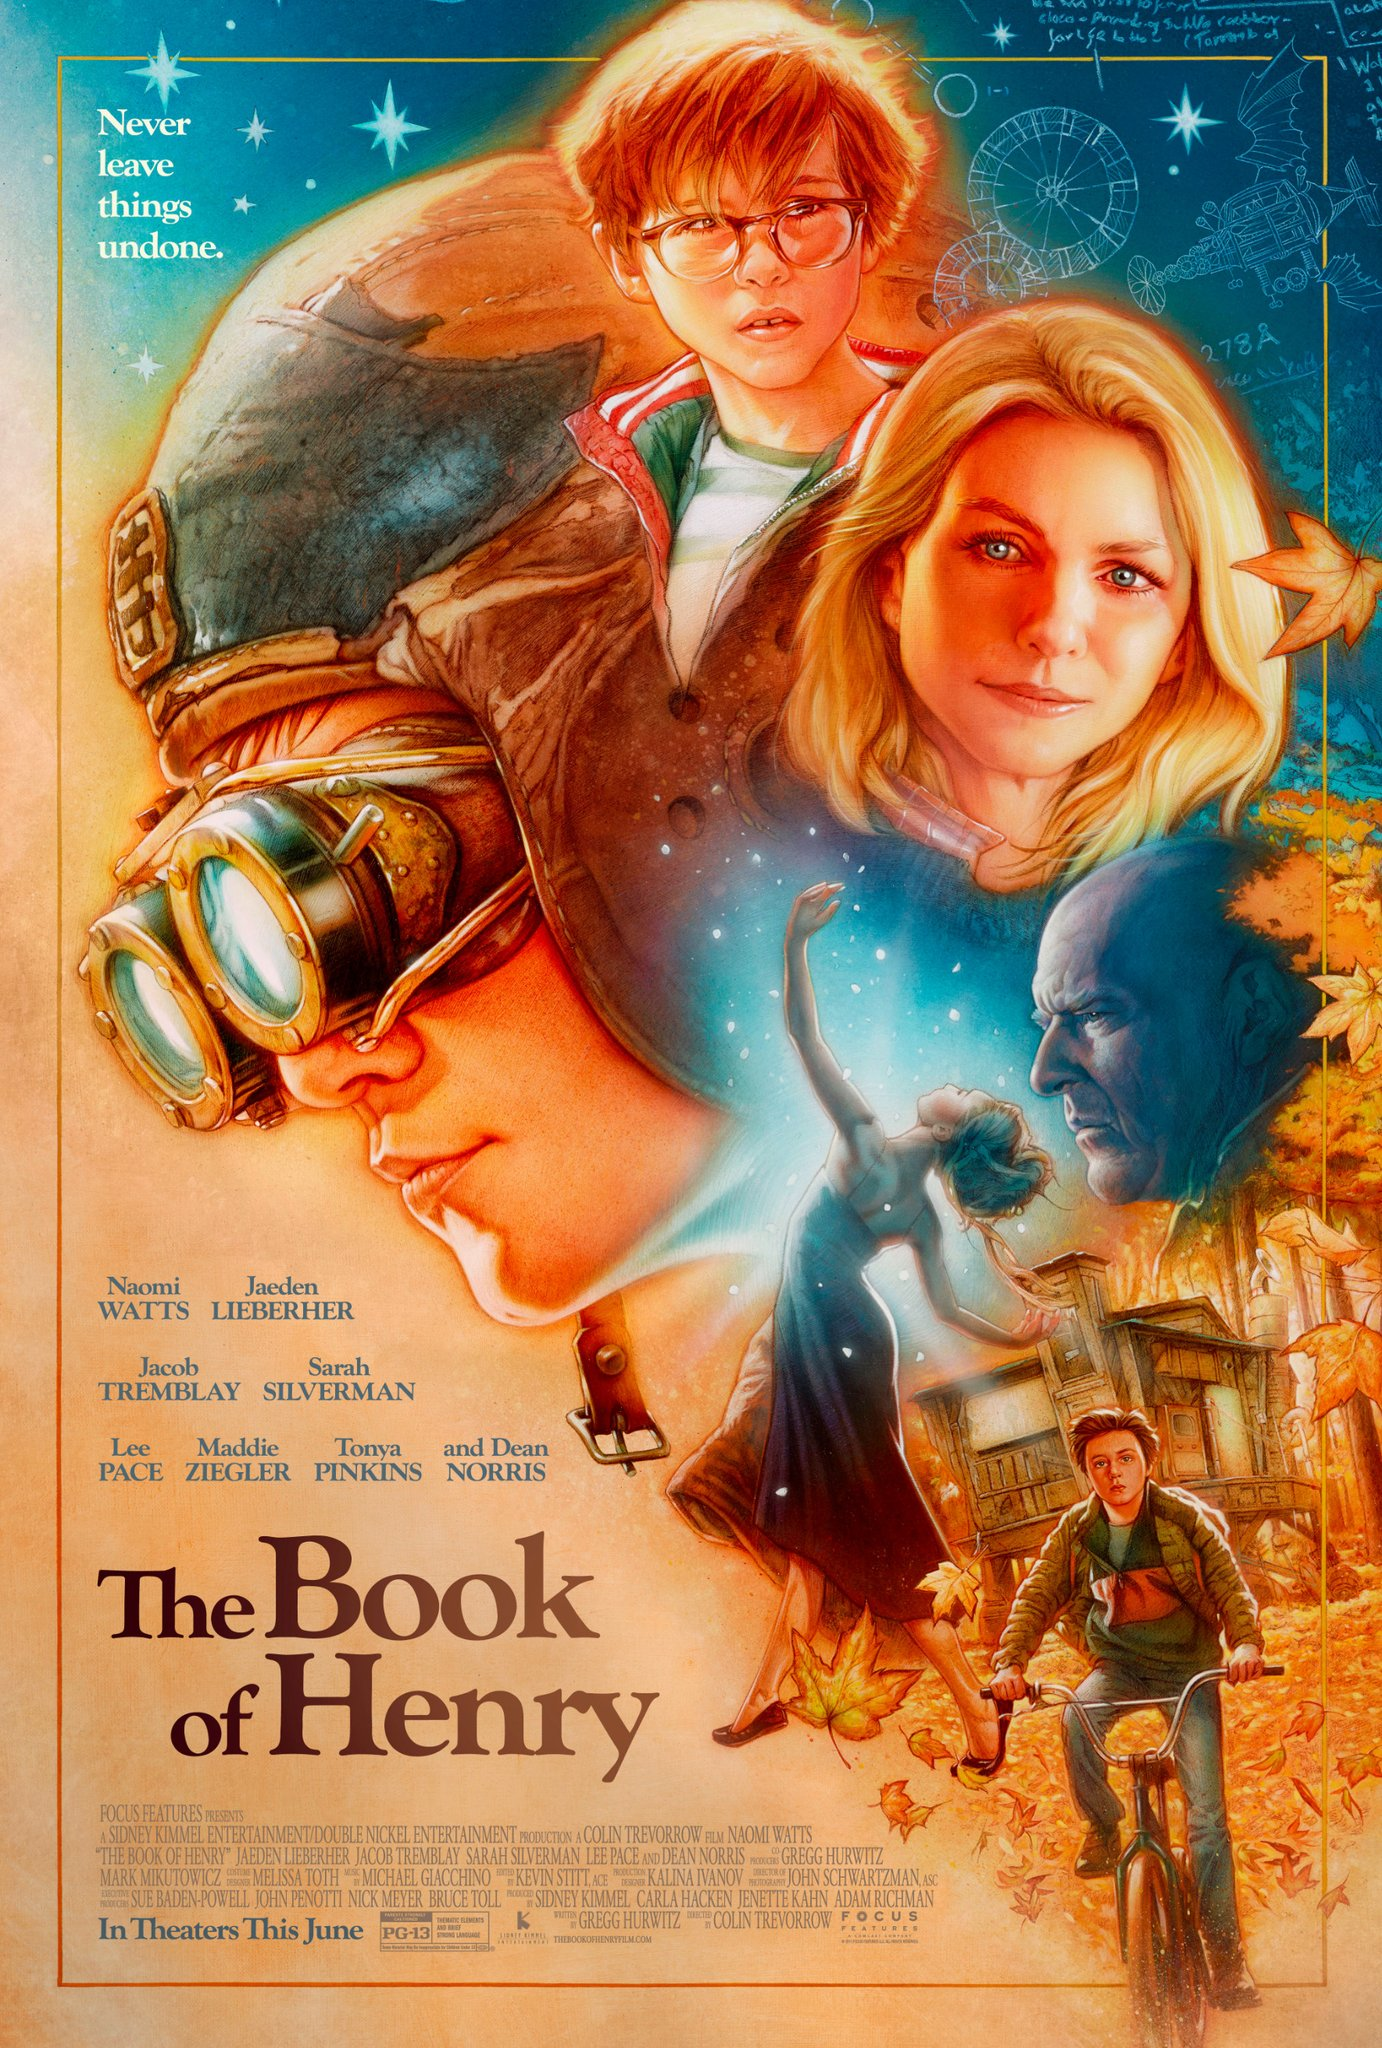 The movie poster book